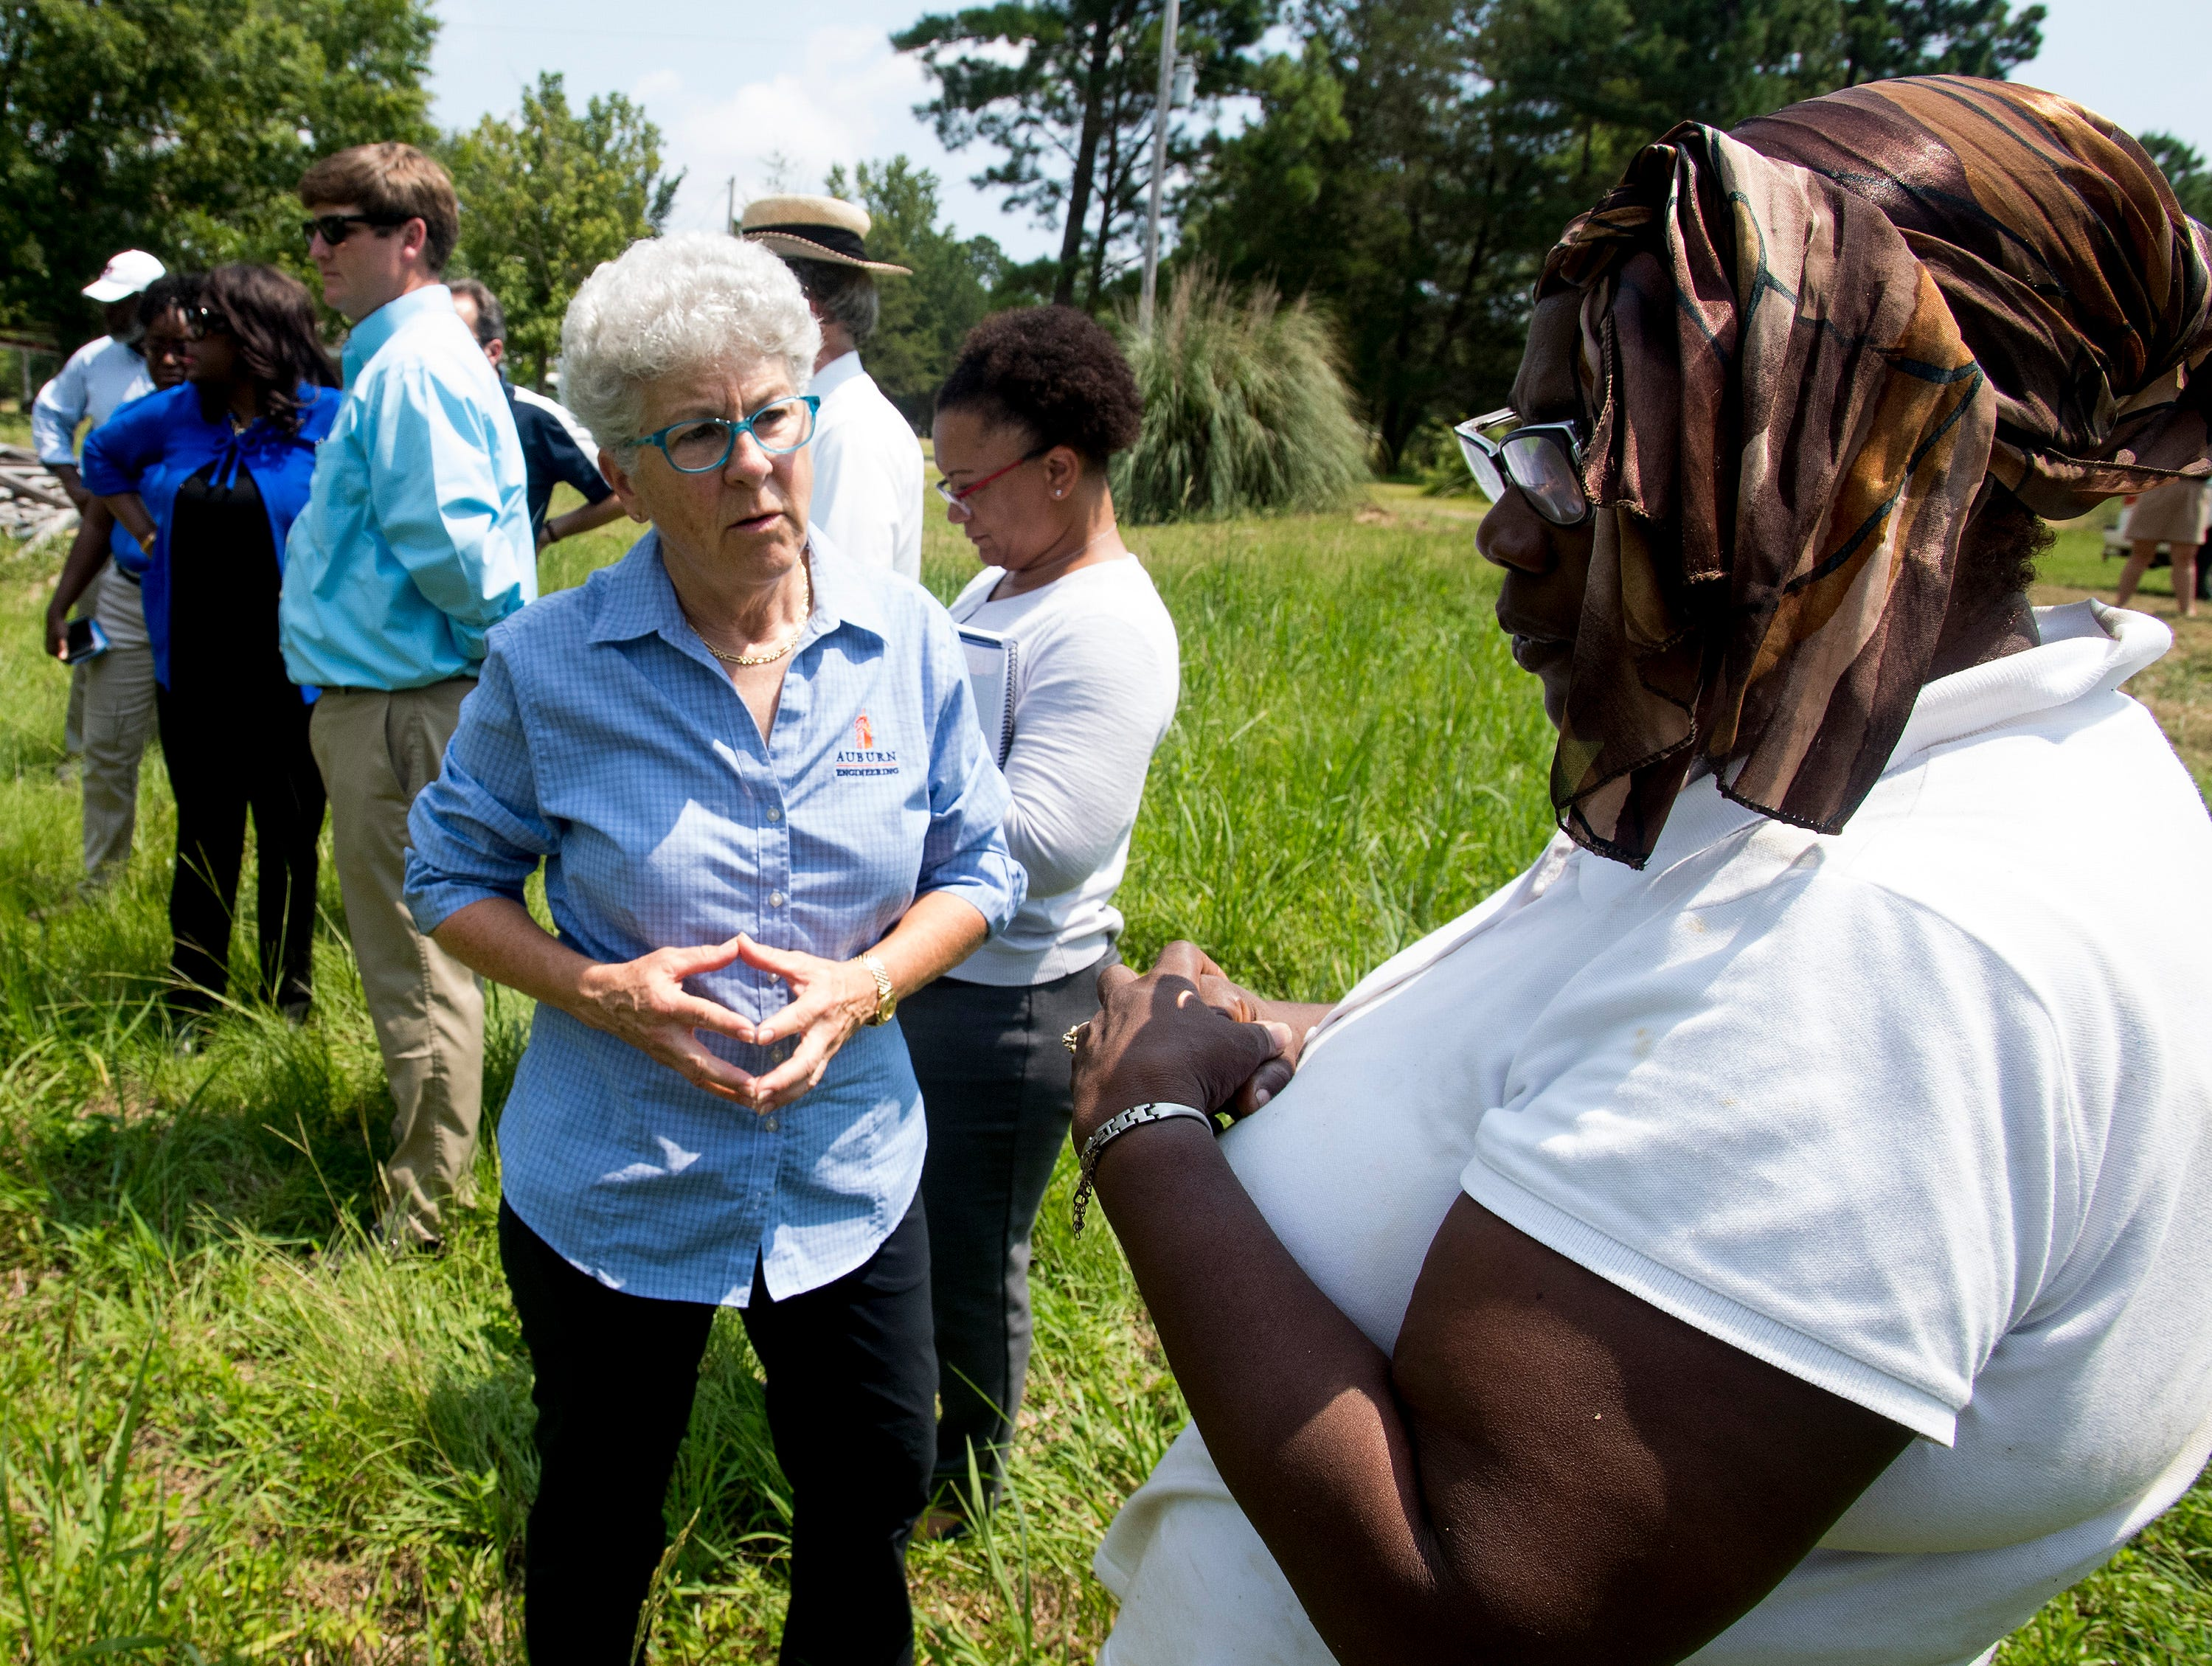 Melissa Herkt, Alumni Advisor of Engineers Without Borders, left, speaks with homeowner Bonnie Bryant as Congresswomen Terri Sewell takes a group of engineering and health experts to homes with sewage problems in rural Lowndes County, Ala., on Monday, July 30, 2018.